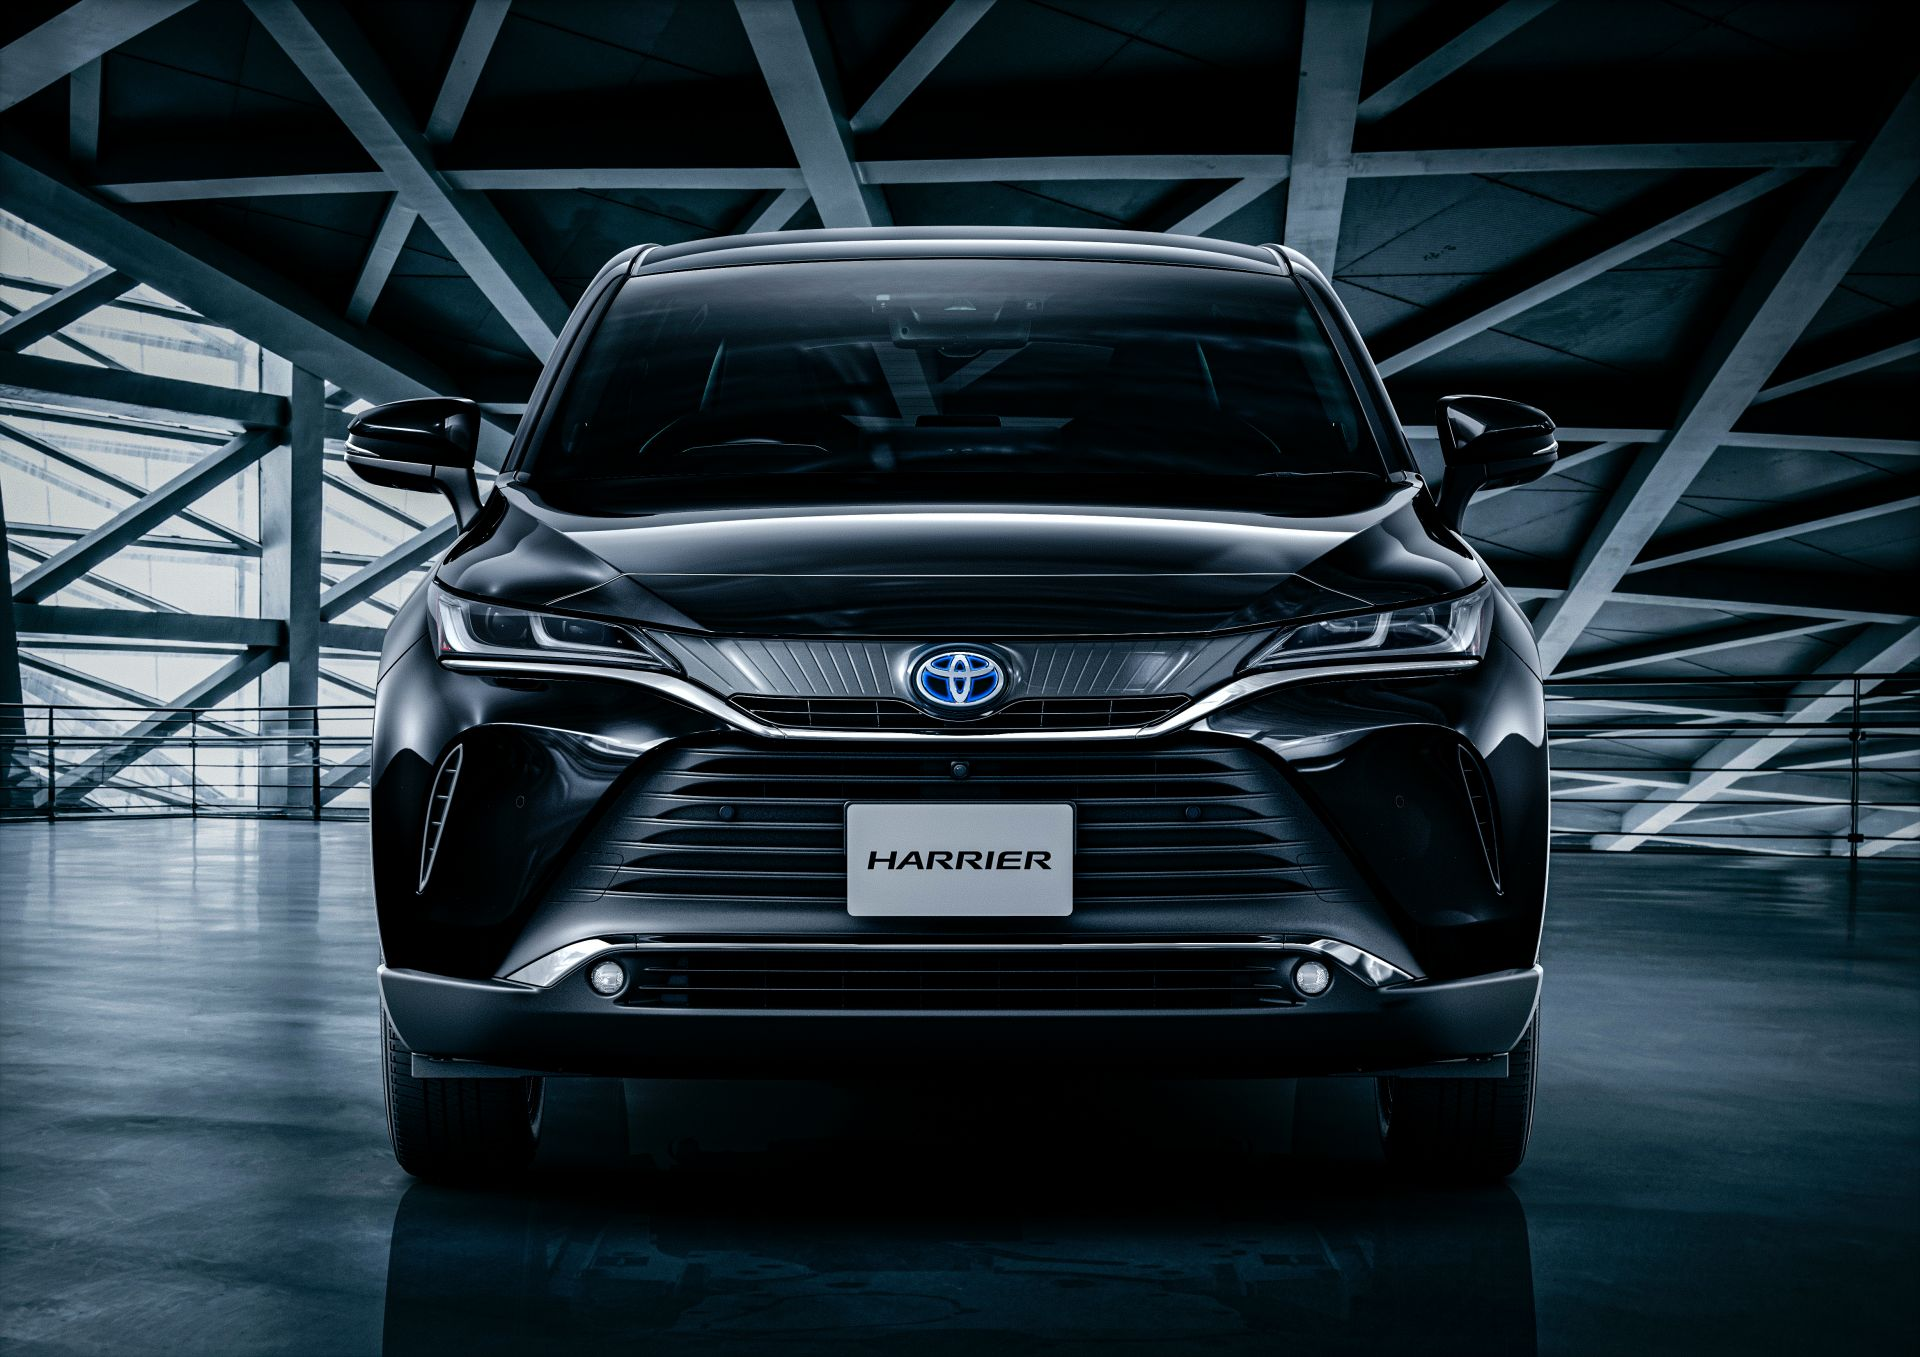 2020_Toyota_Harrier_0002